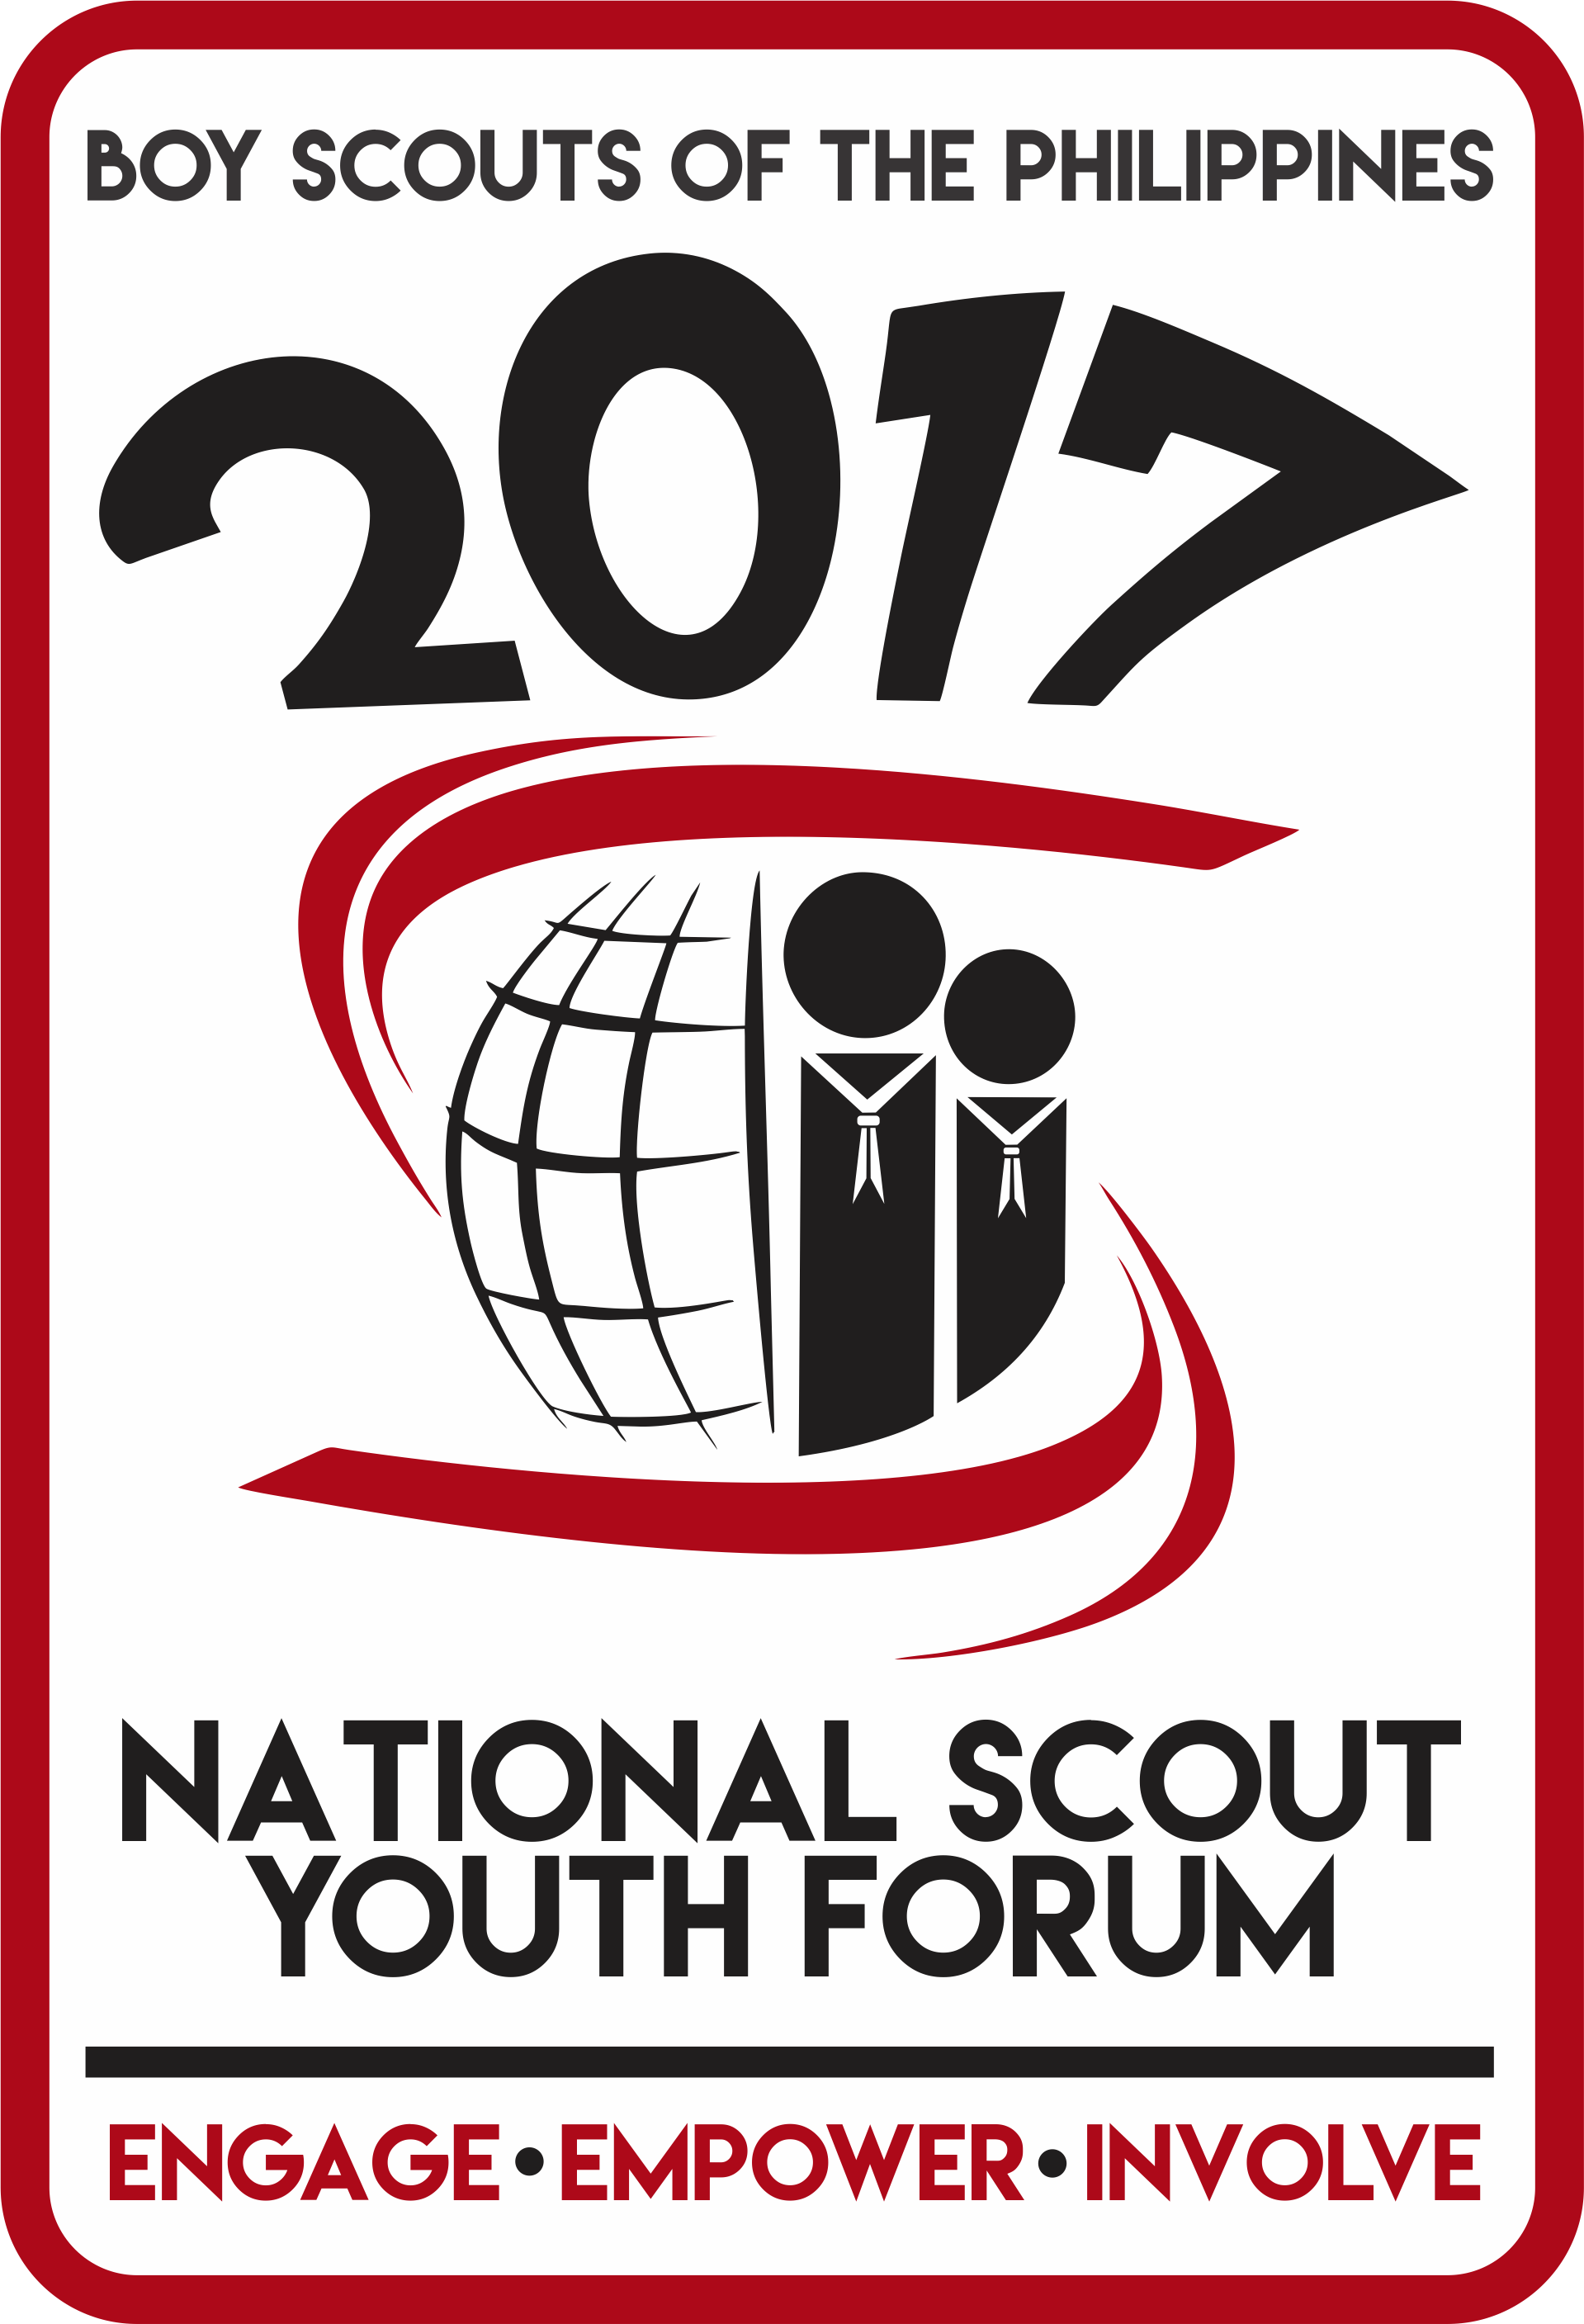 2017 National Scout Youth Forum for Luzon - BSP